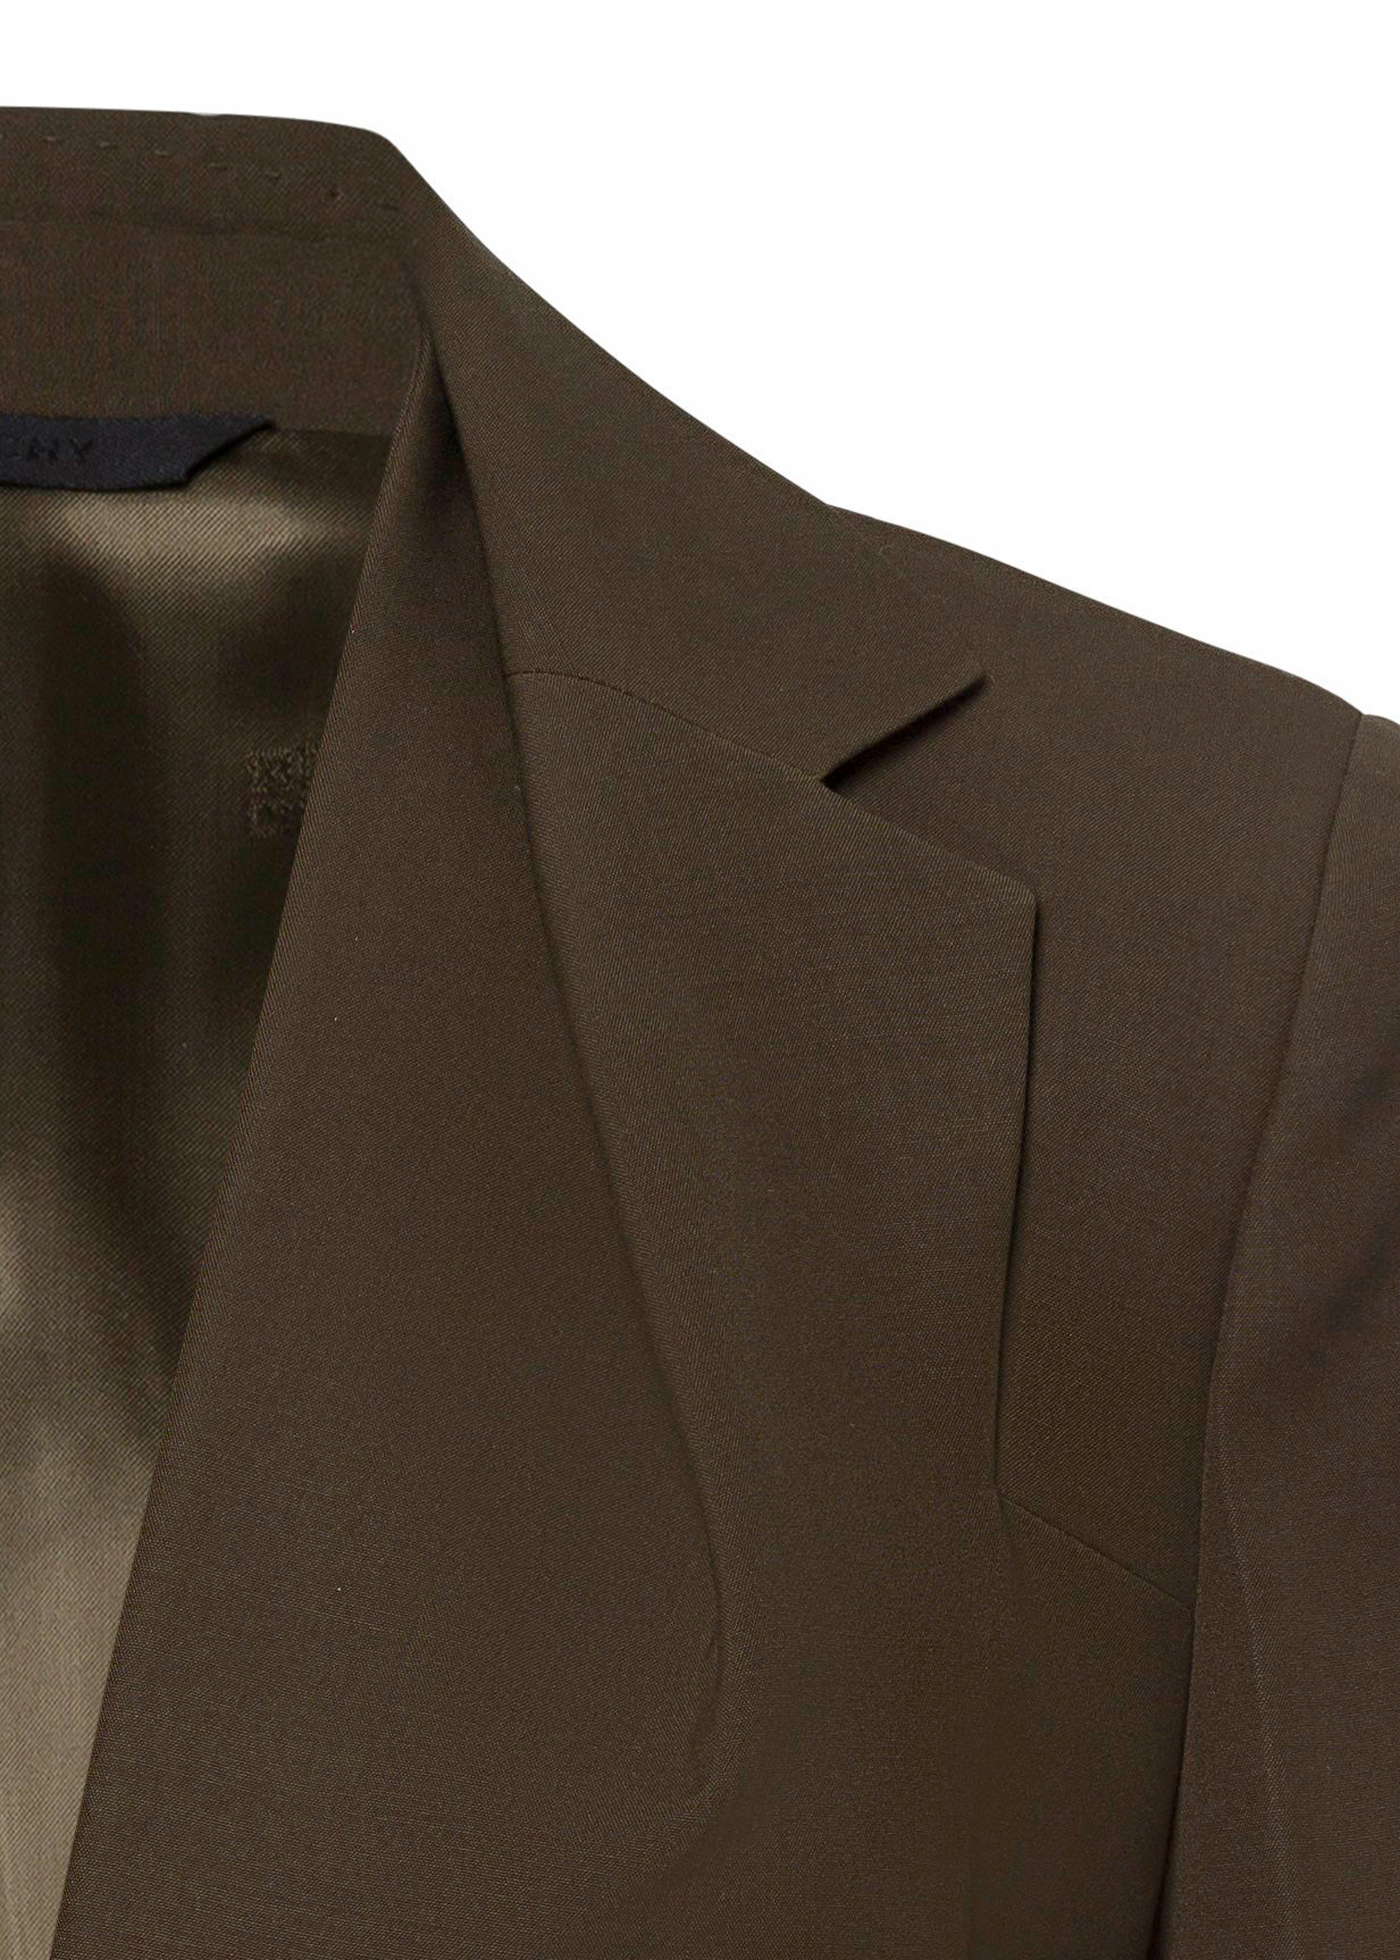 TAILORED JACKET W/ DRAPPED COLLAR image number 2